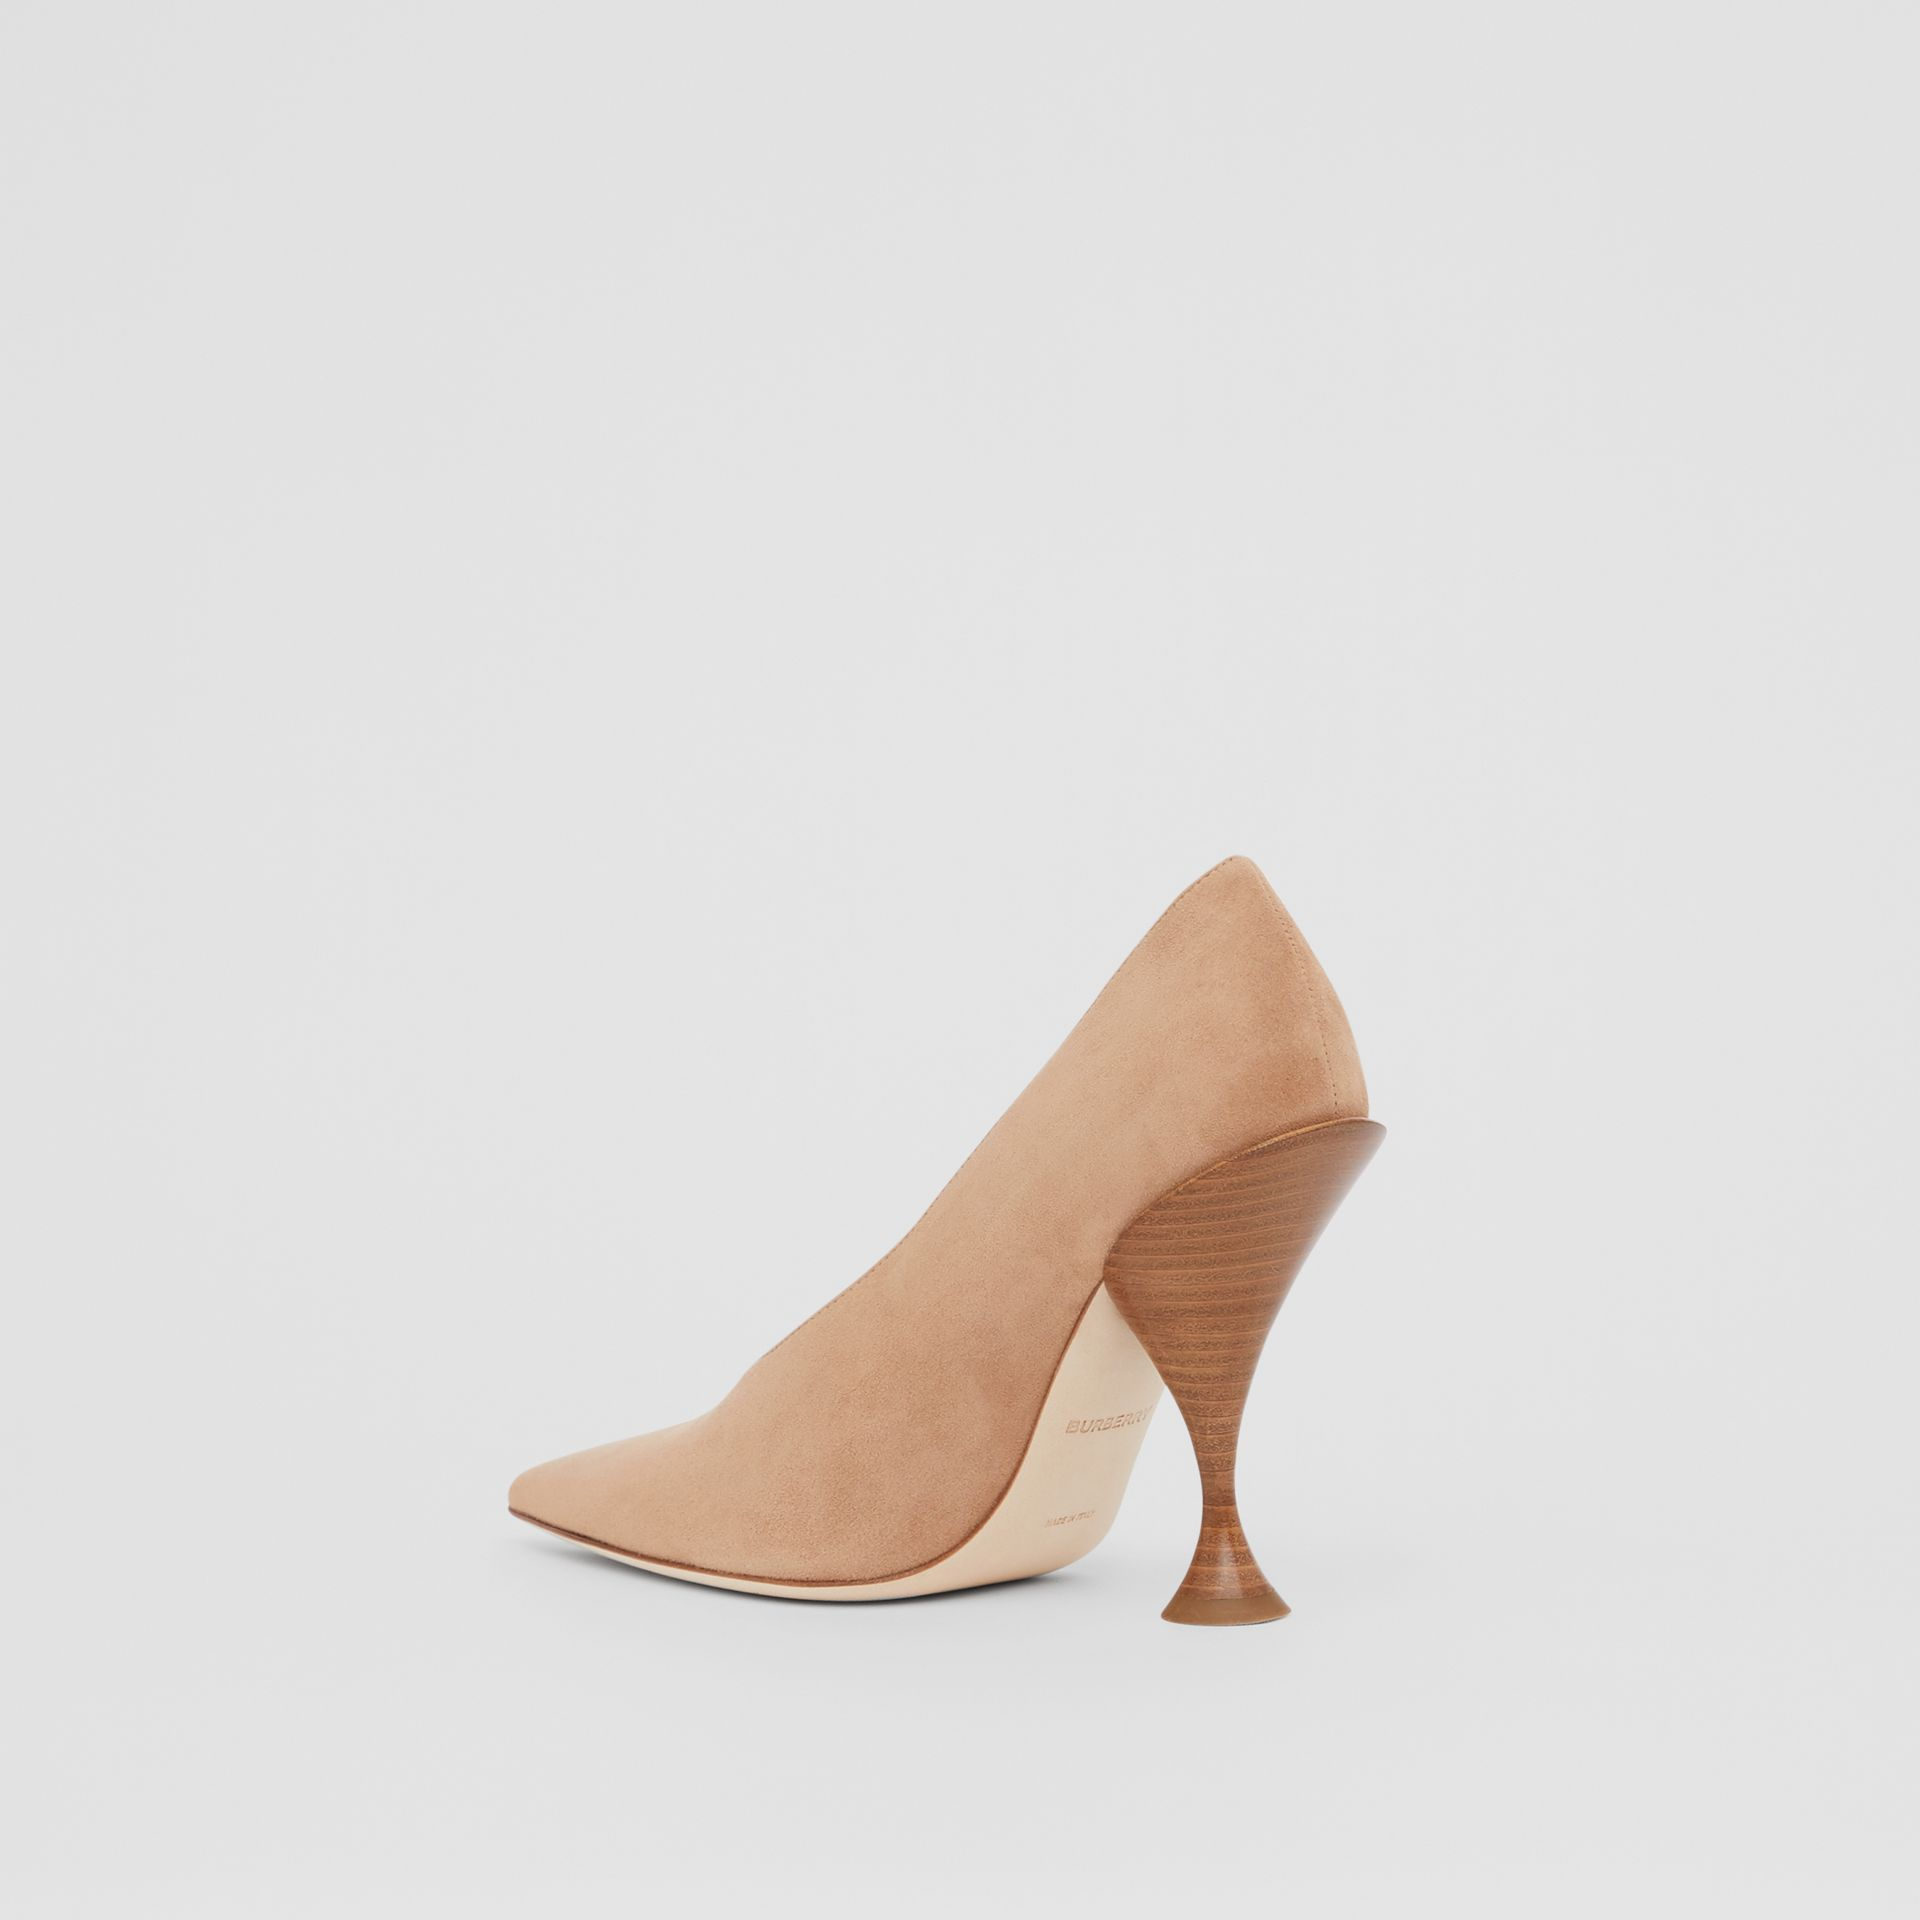 Suede Point-toe Pumps in Warm Camel - Women | Burberry United Kingdom - gallery image 5